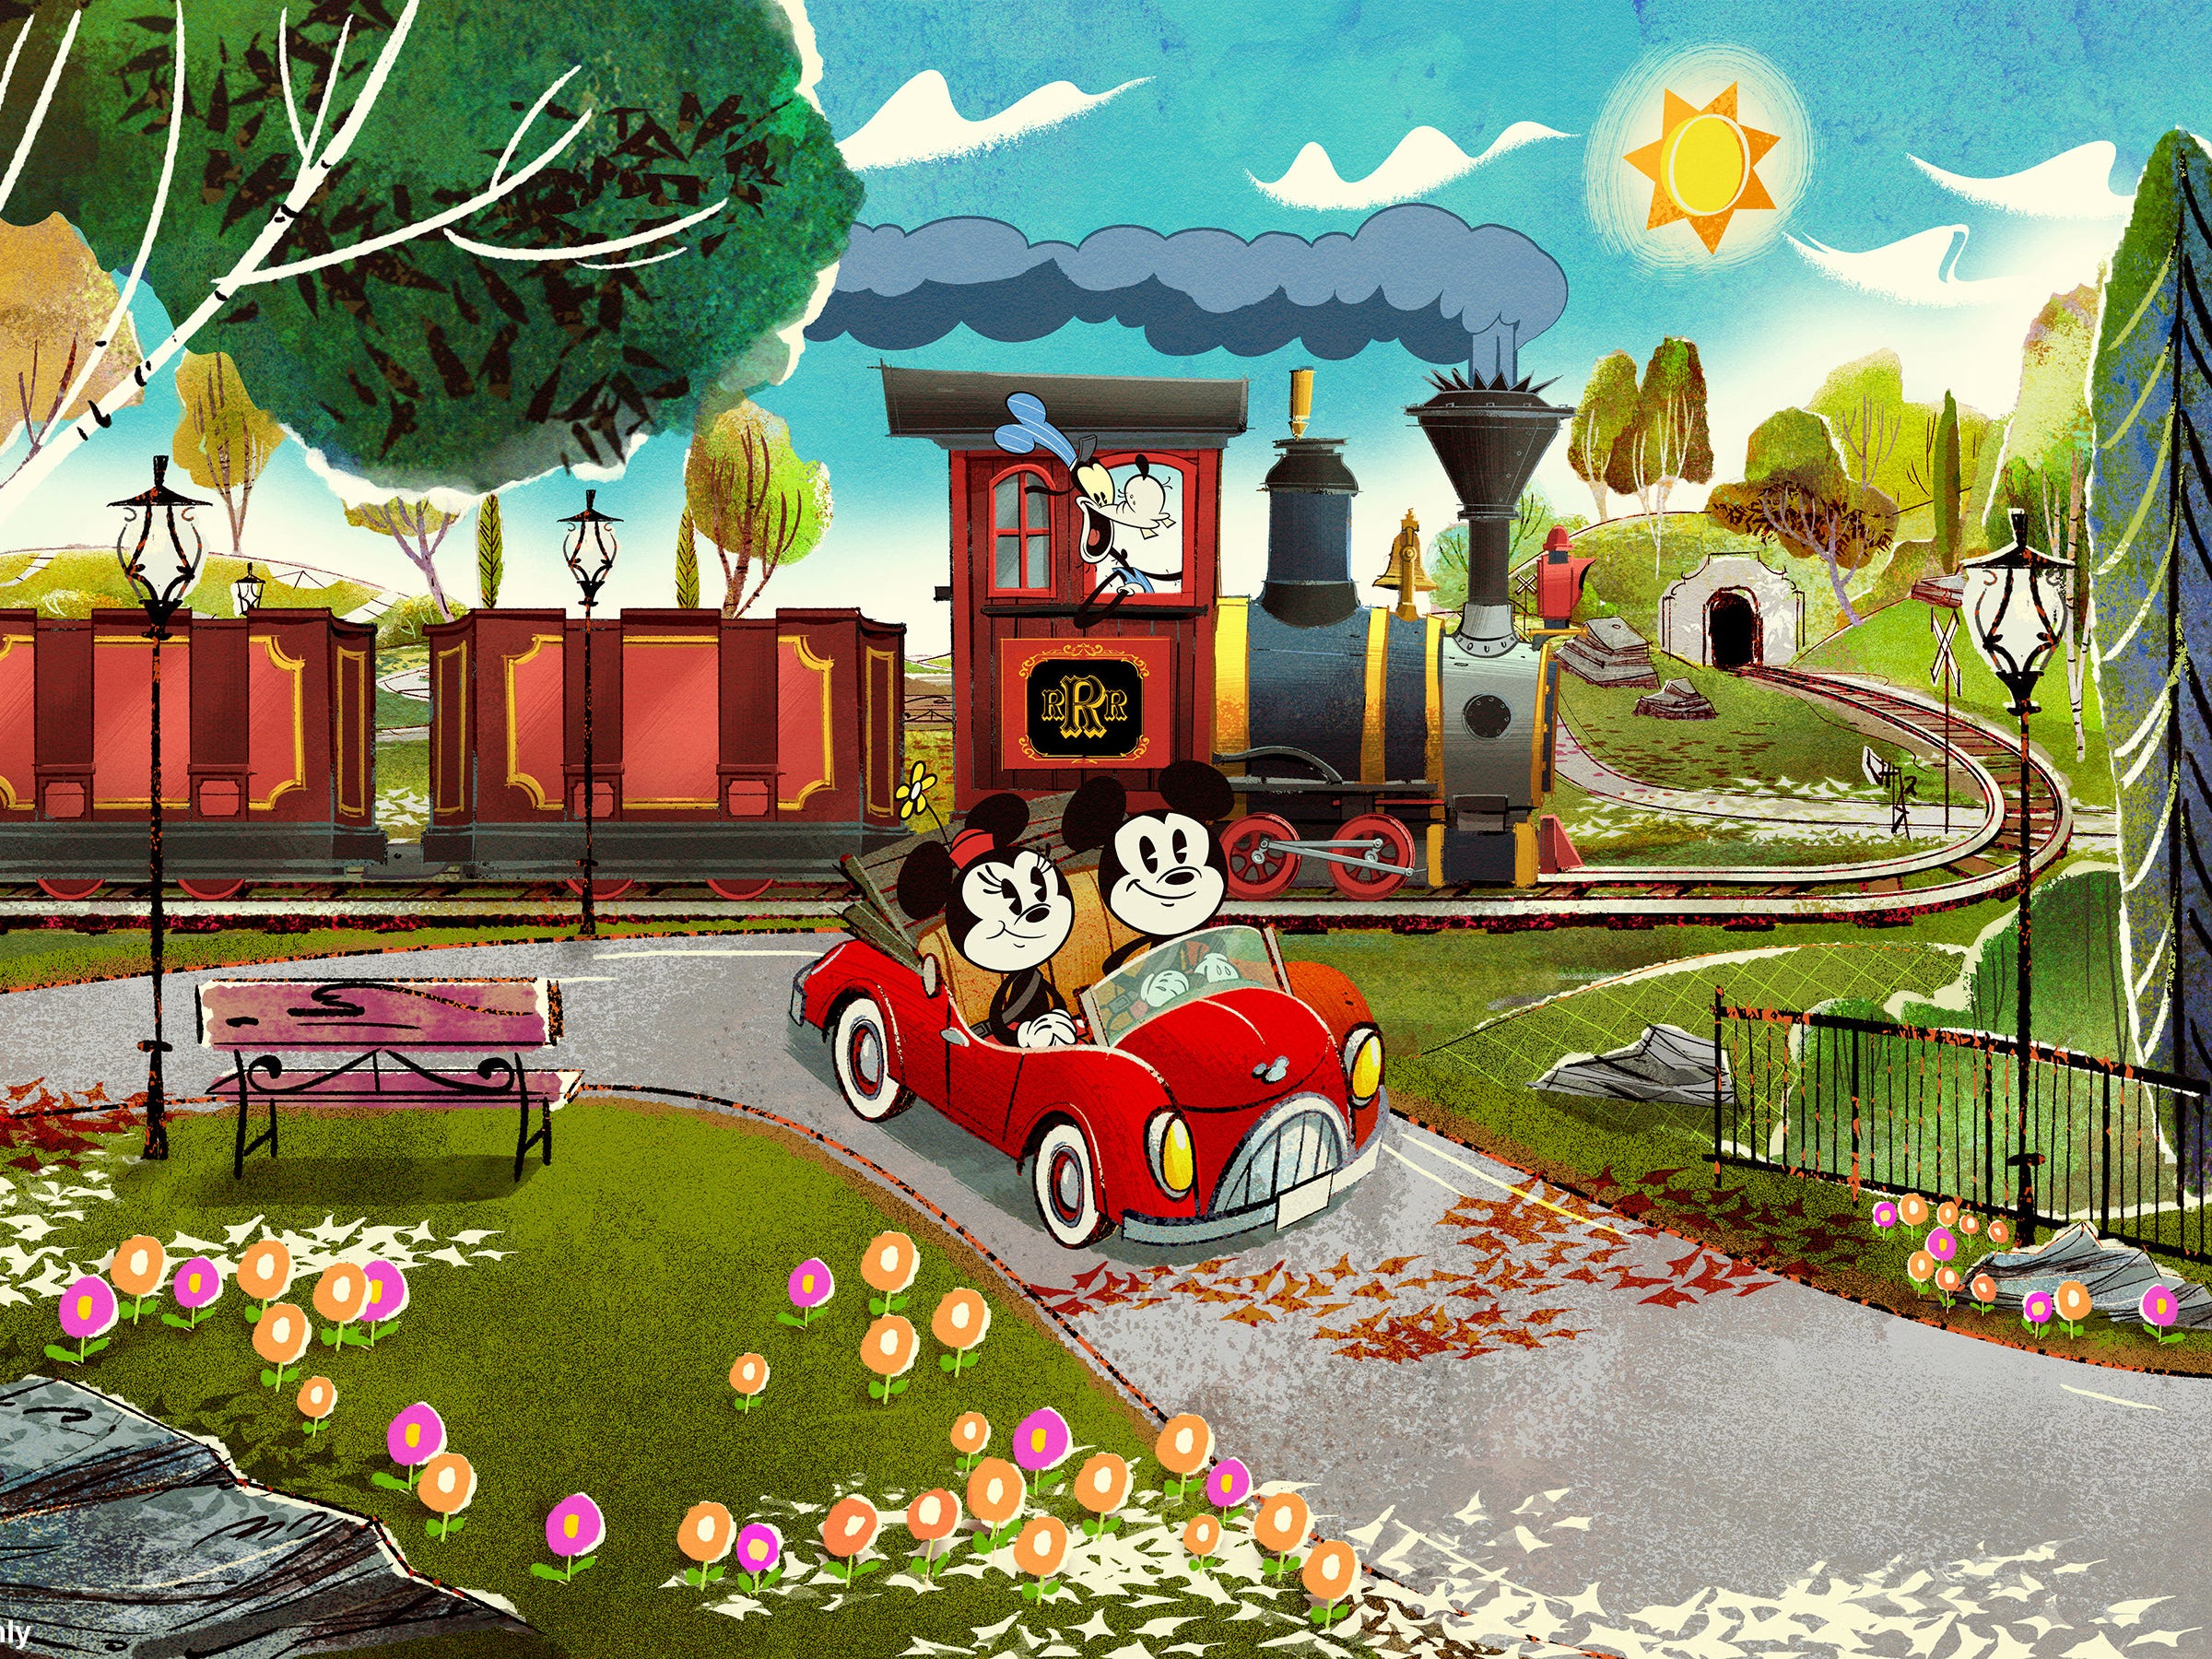 Mickey Mouse recently celebrated his 90th birthday, but the cherubic mascot hasn't aged a whit. In fact, retro, pie-eyed versions of Mr. Mouse and his constant companion will star in their first ride, Mickey & Minnie's Runaway Railway. Set to debut at Disney's Hollywood Studios in the fall, passengers will be magically transported into an animated world alongside the mice where they will board a train with Goofy at the helm.